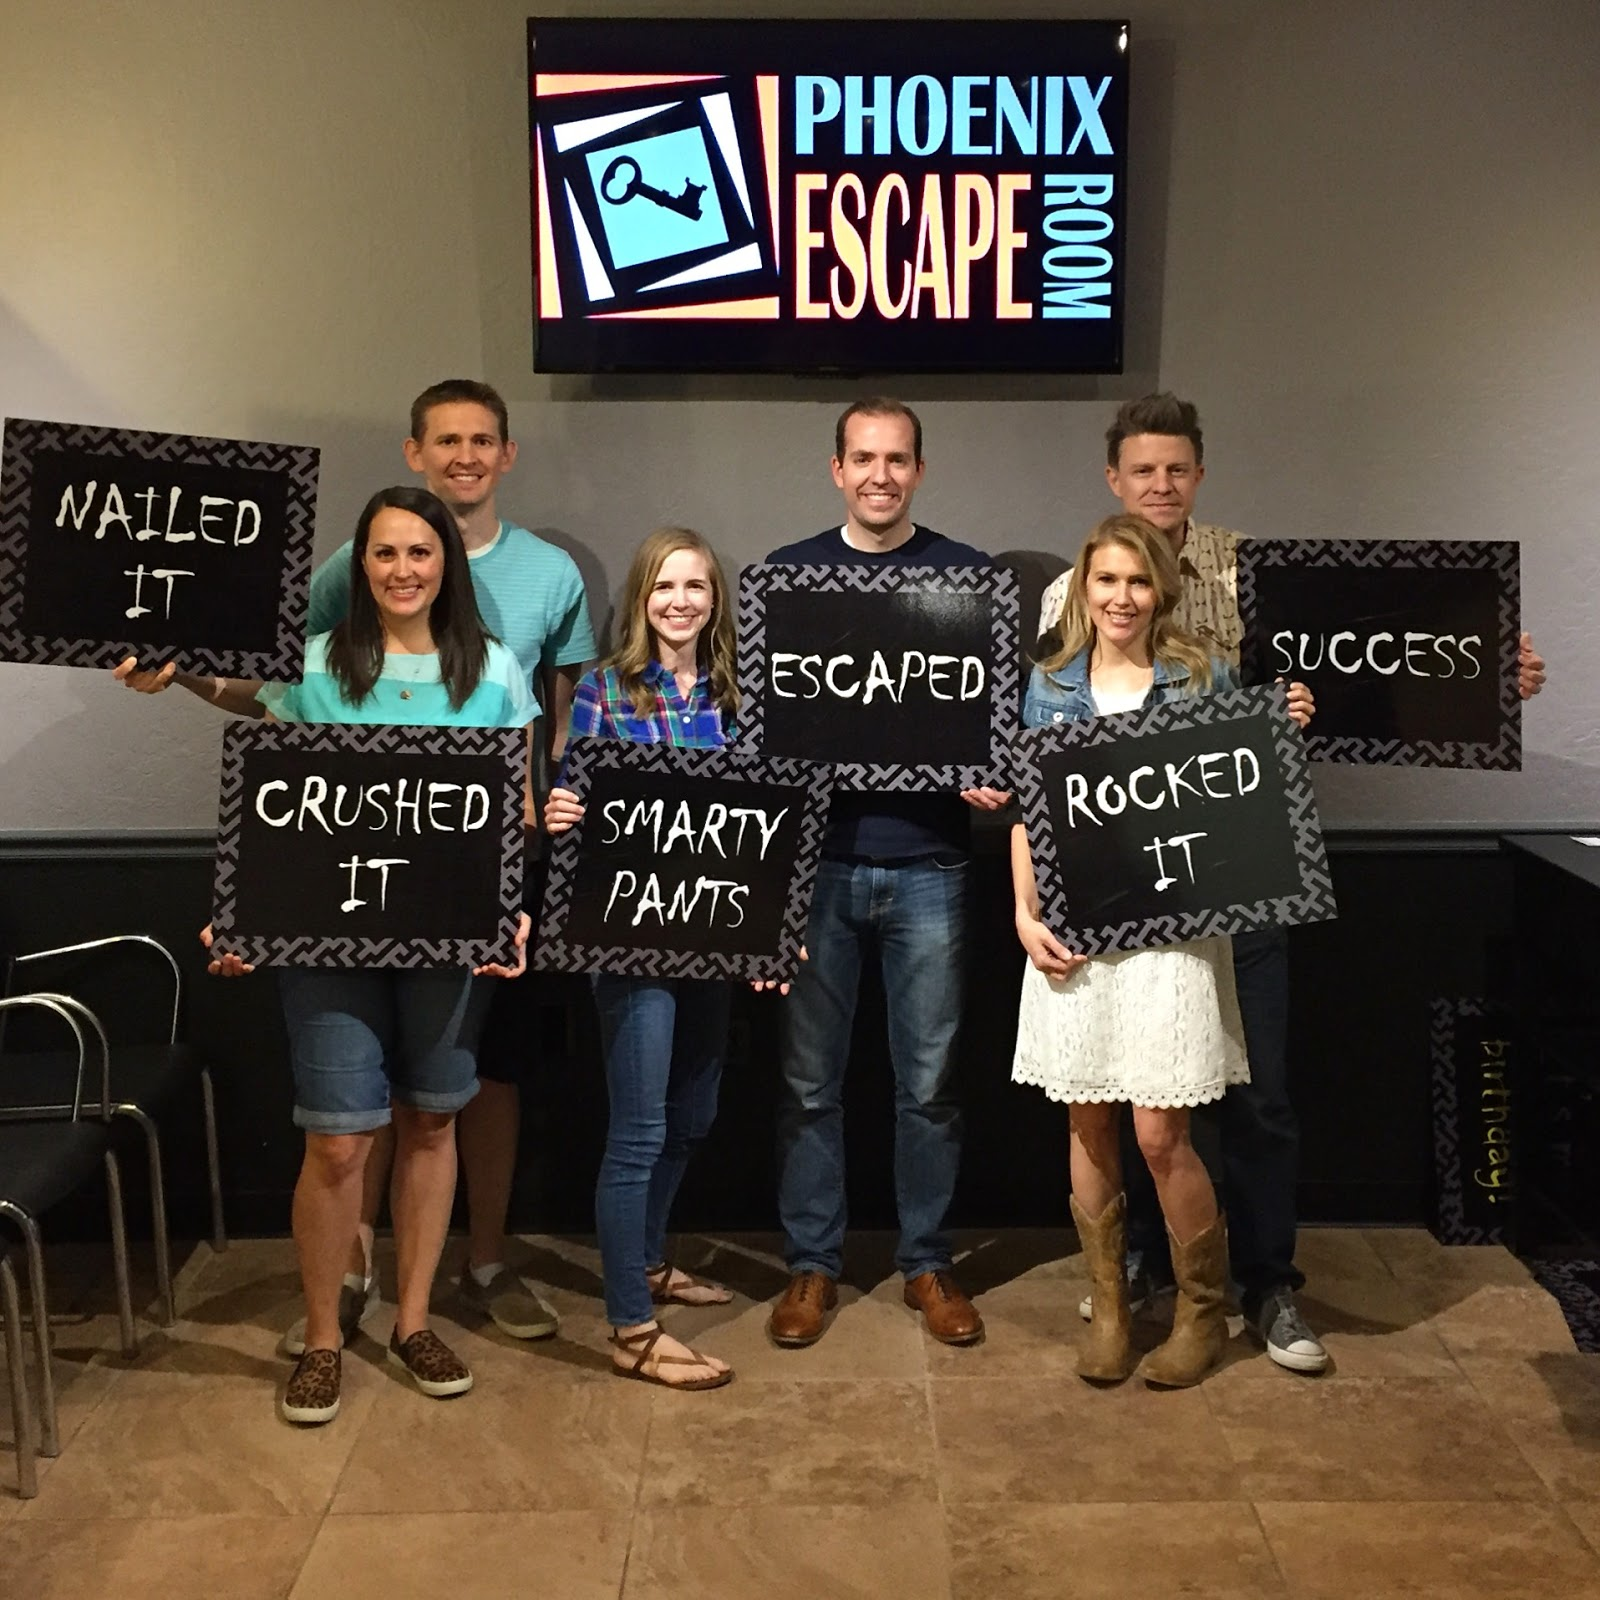 Have you tried out an escape room? It's such a fun date or group outing!